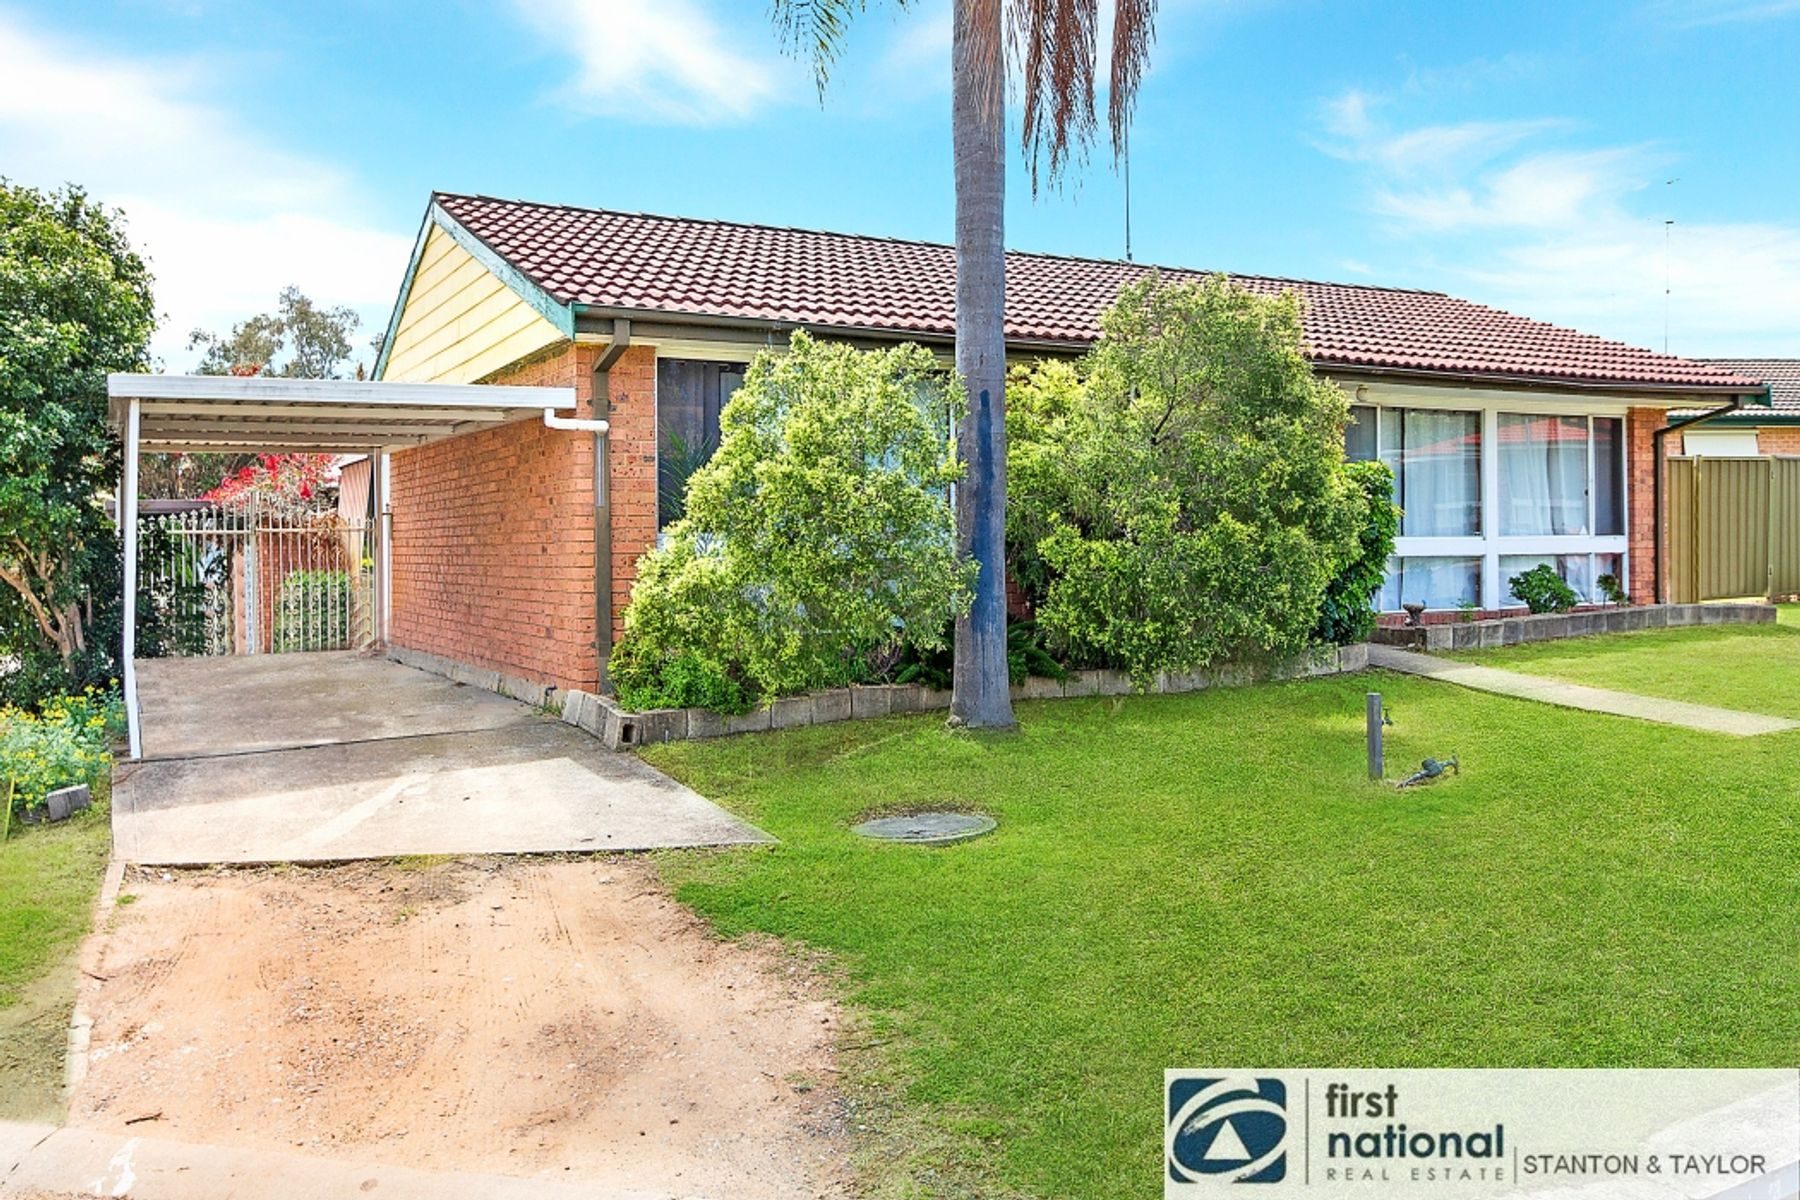 1 Knight Close, Kingswood, NSW 2747